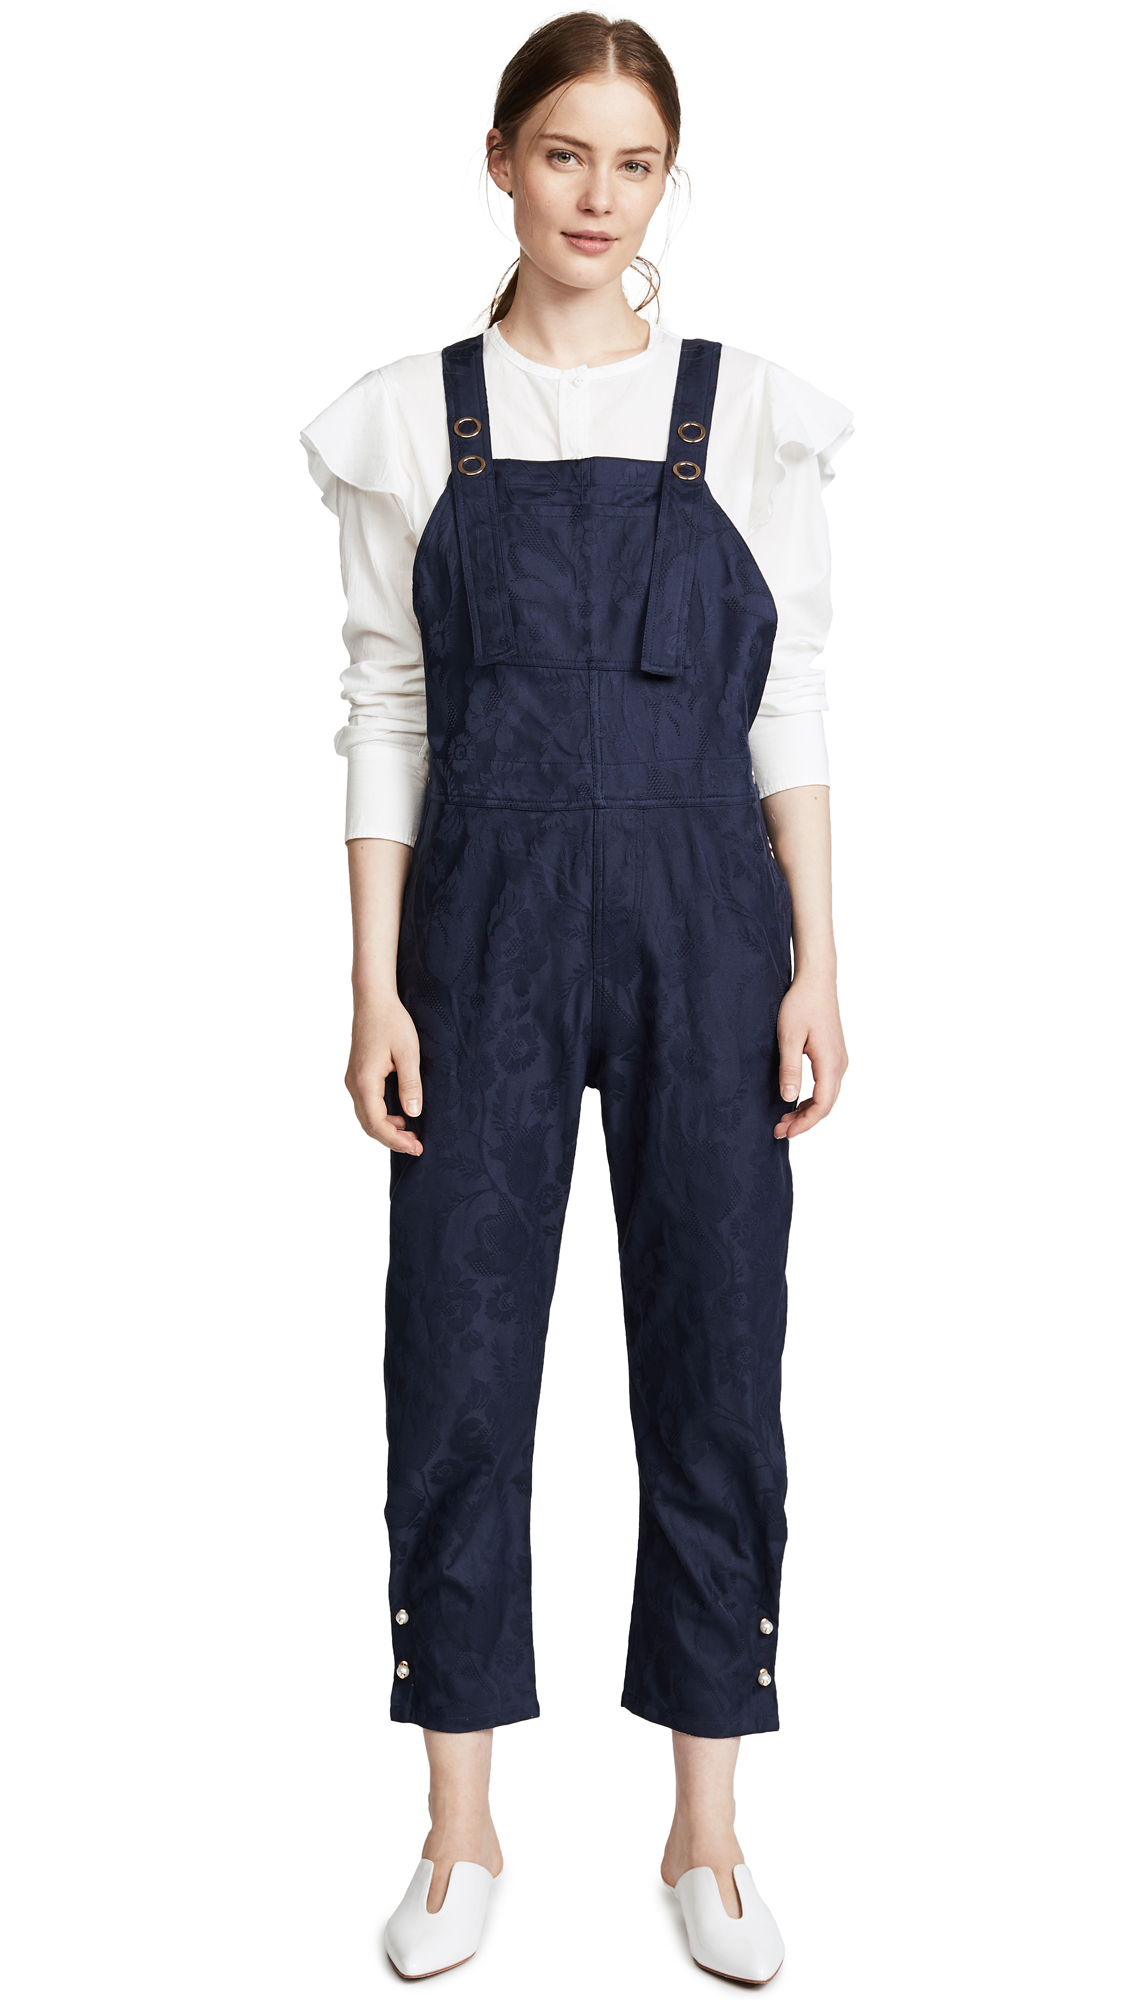 FRANKIE OVERALL DUNGAREES